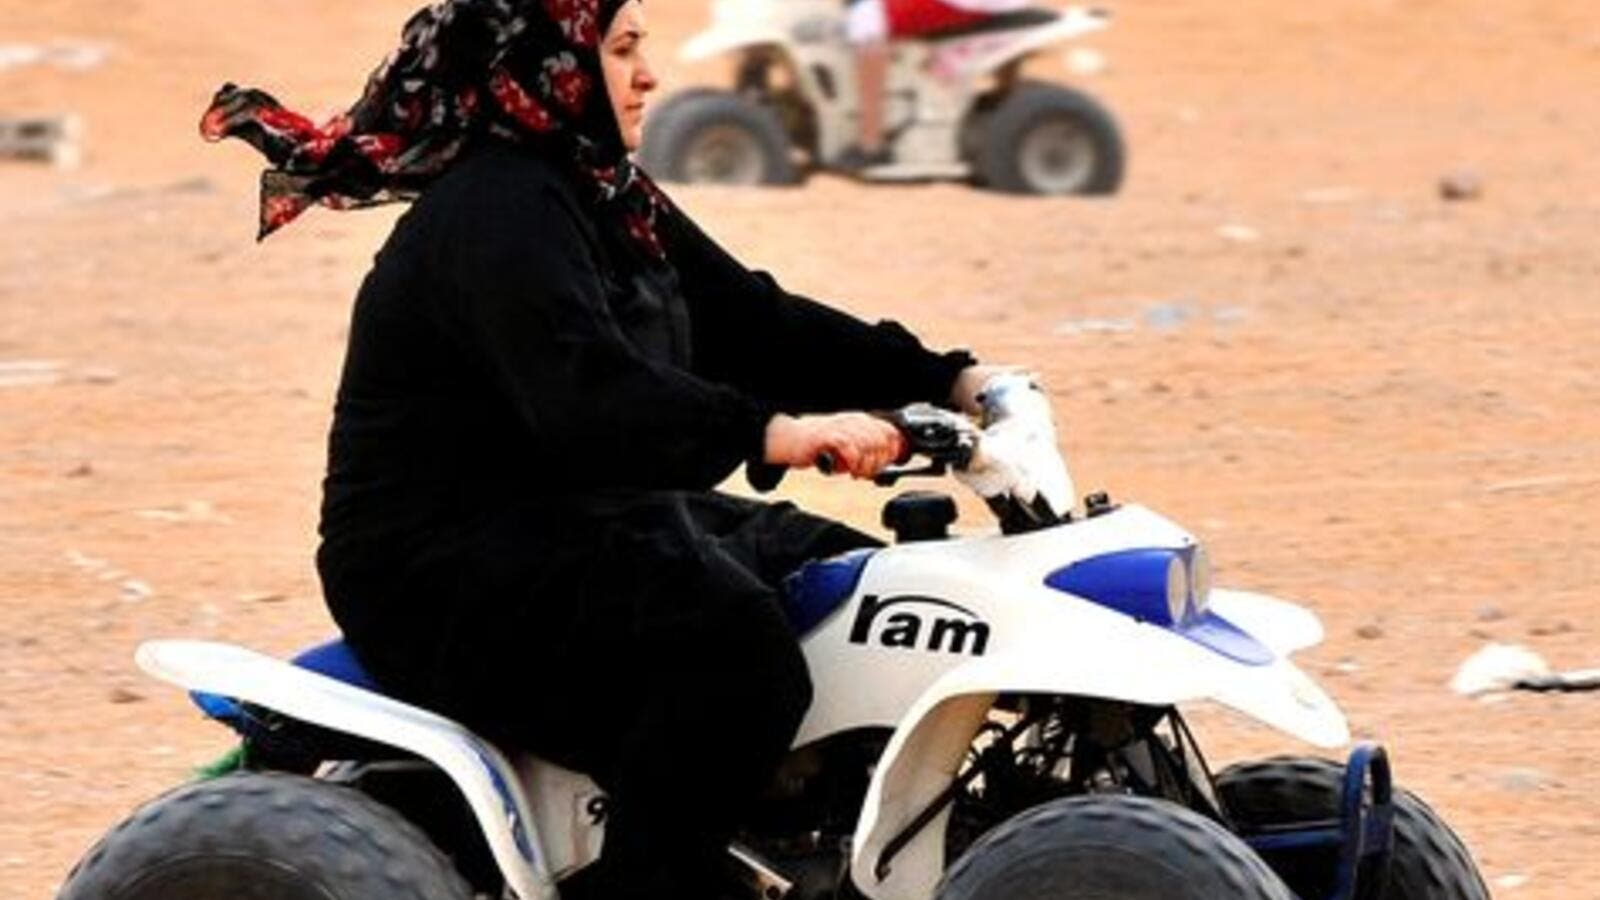 The picture of happiness: A Saudi woman drives an ATV (all-terrain vehicle). (AFP/File)